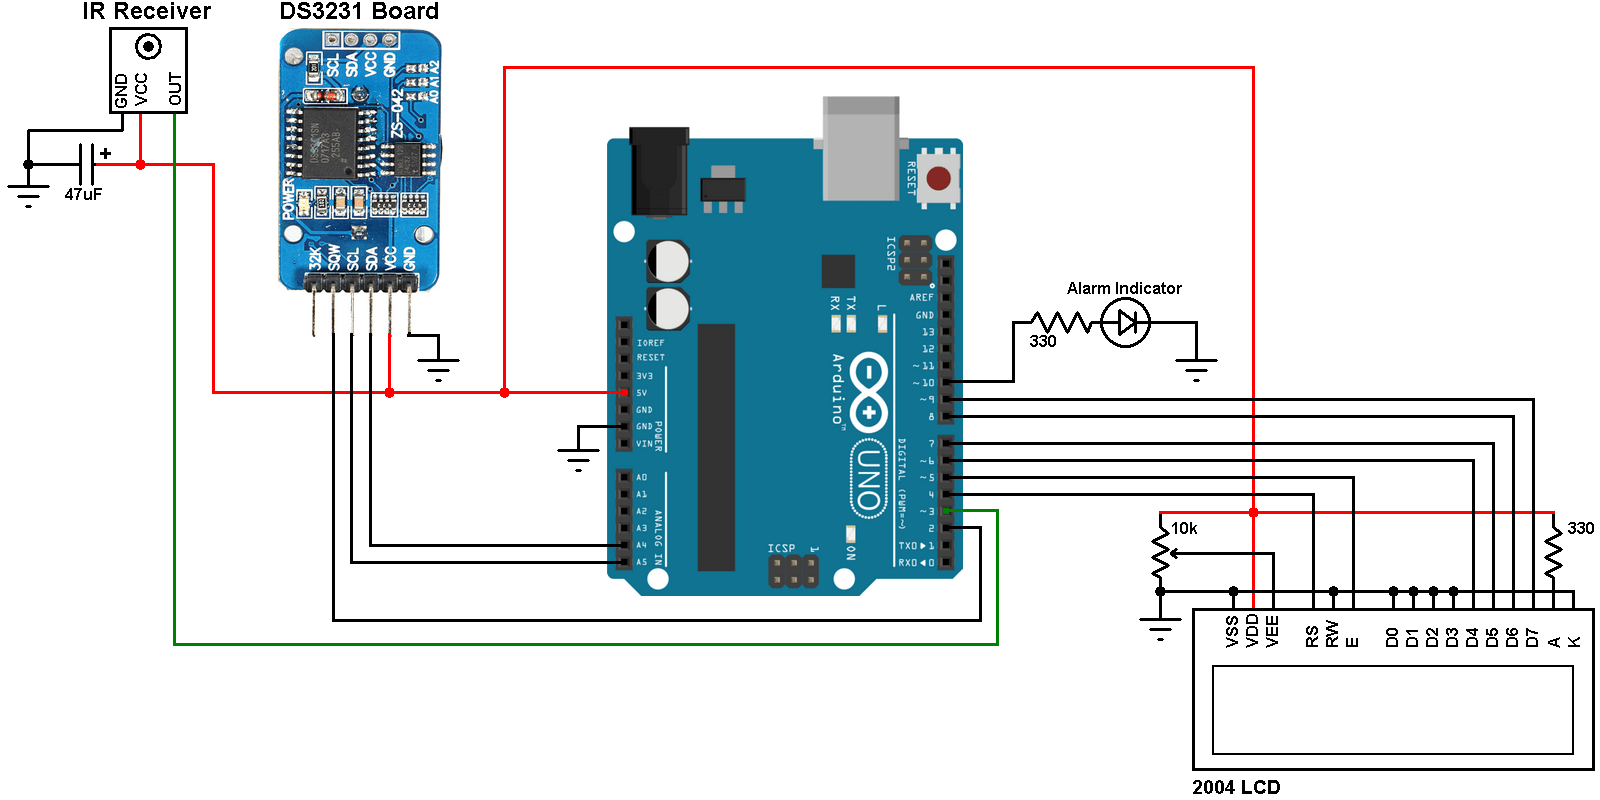 hight resolution of arduino with ds3231 real time clock calendar with alarms temperature monitor and remote control